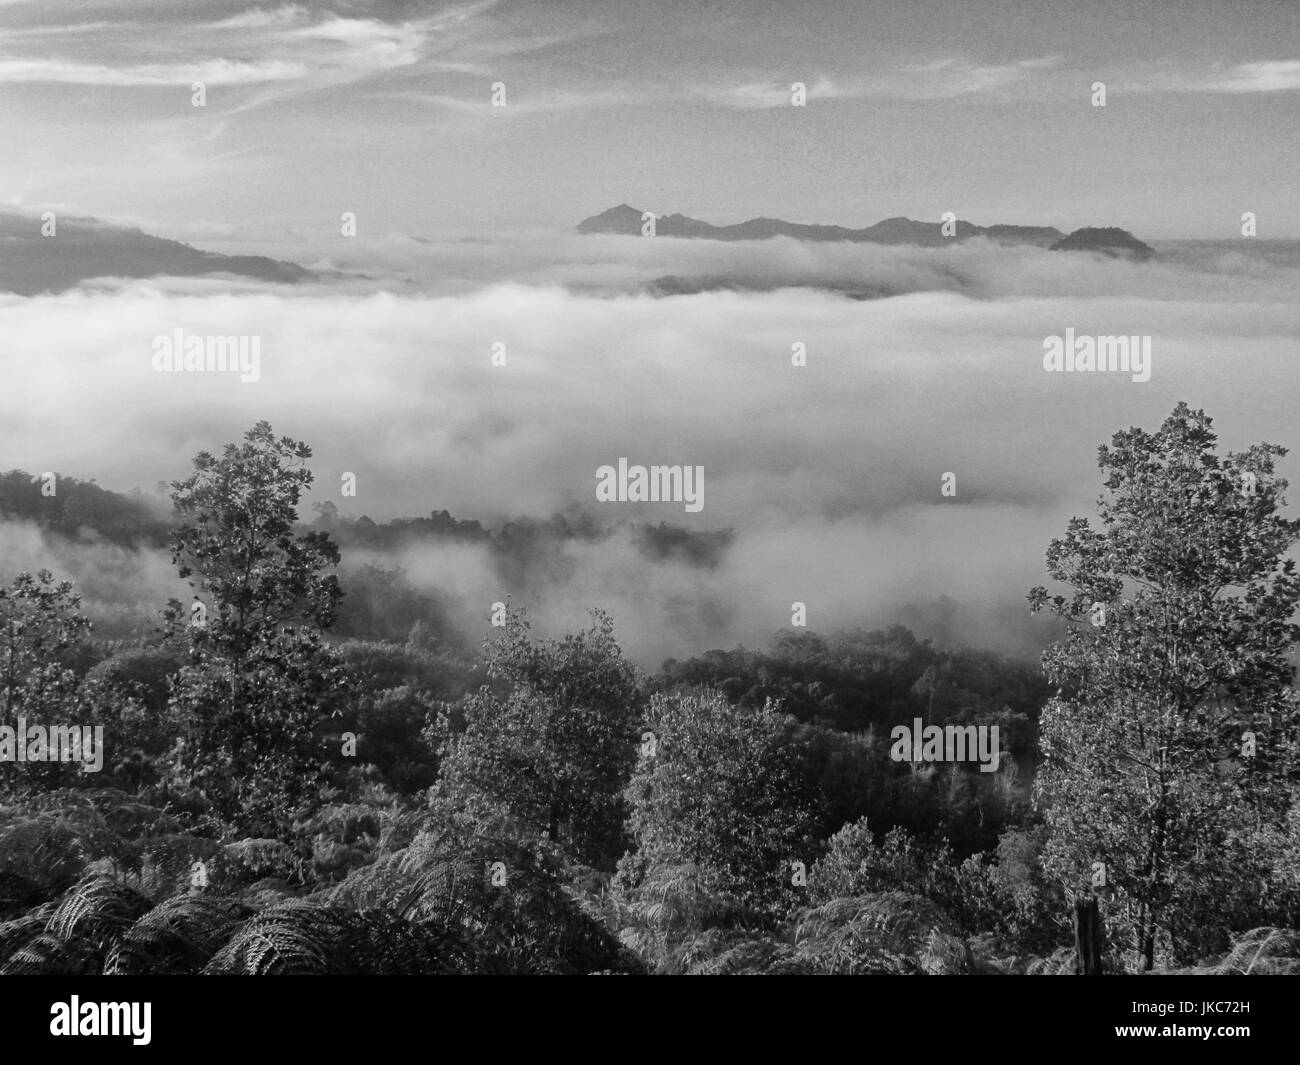 Morning view of the horizon from above the clouds in Bonkud, Borneo in black and white - Stock Image